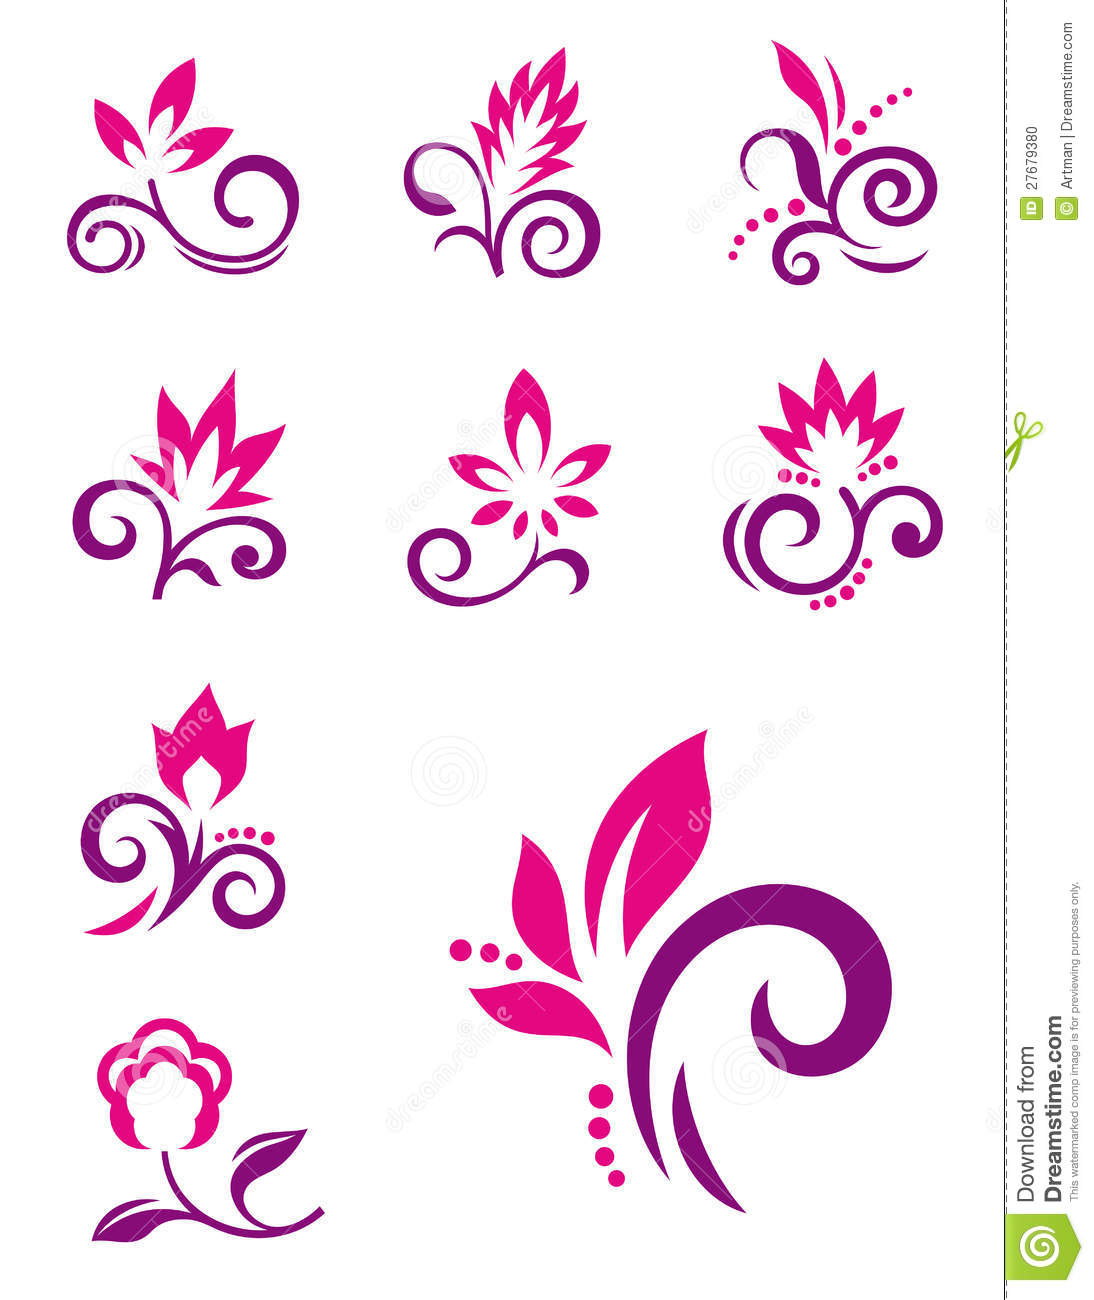 Floral Design Elements. Vector Flower Icons Stock Photo - Image ...